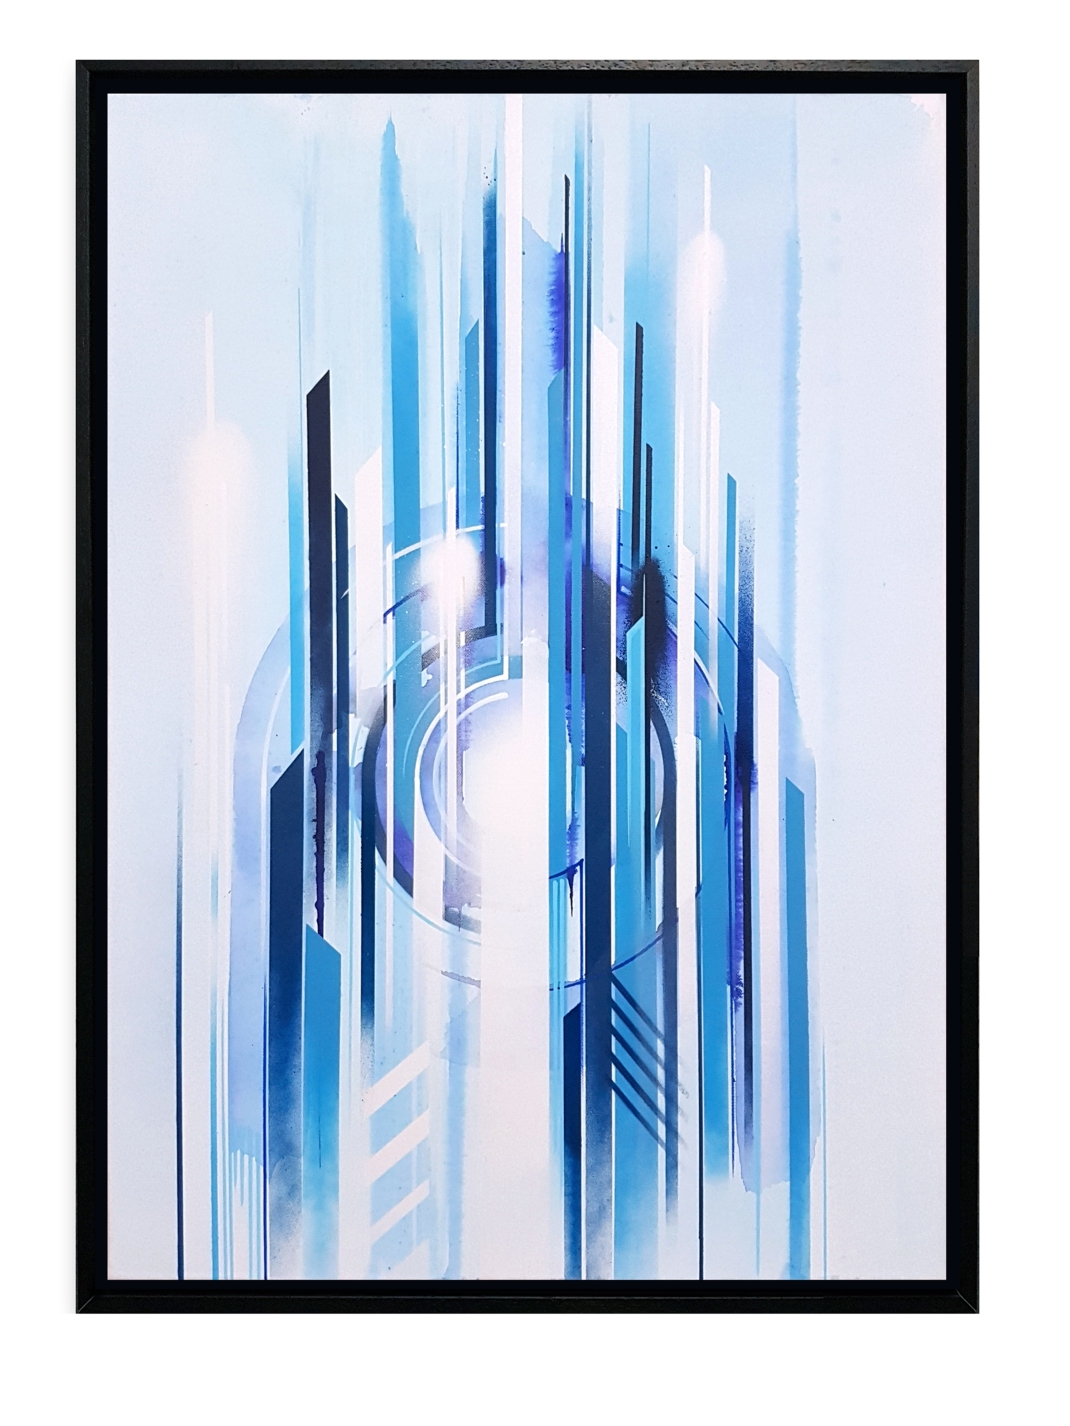 iazzu - interstellar Blue 2 Magaldi 50x70 2017